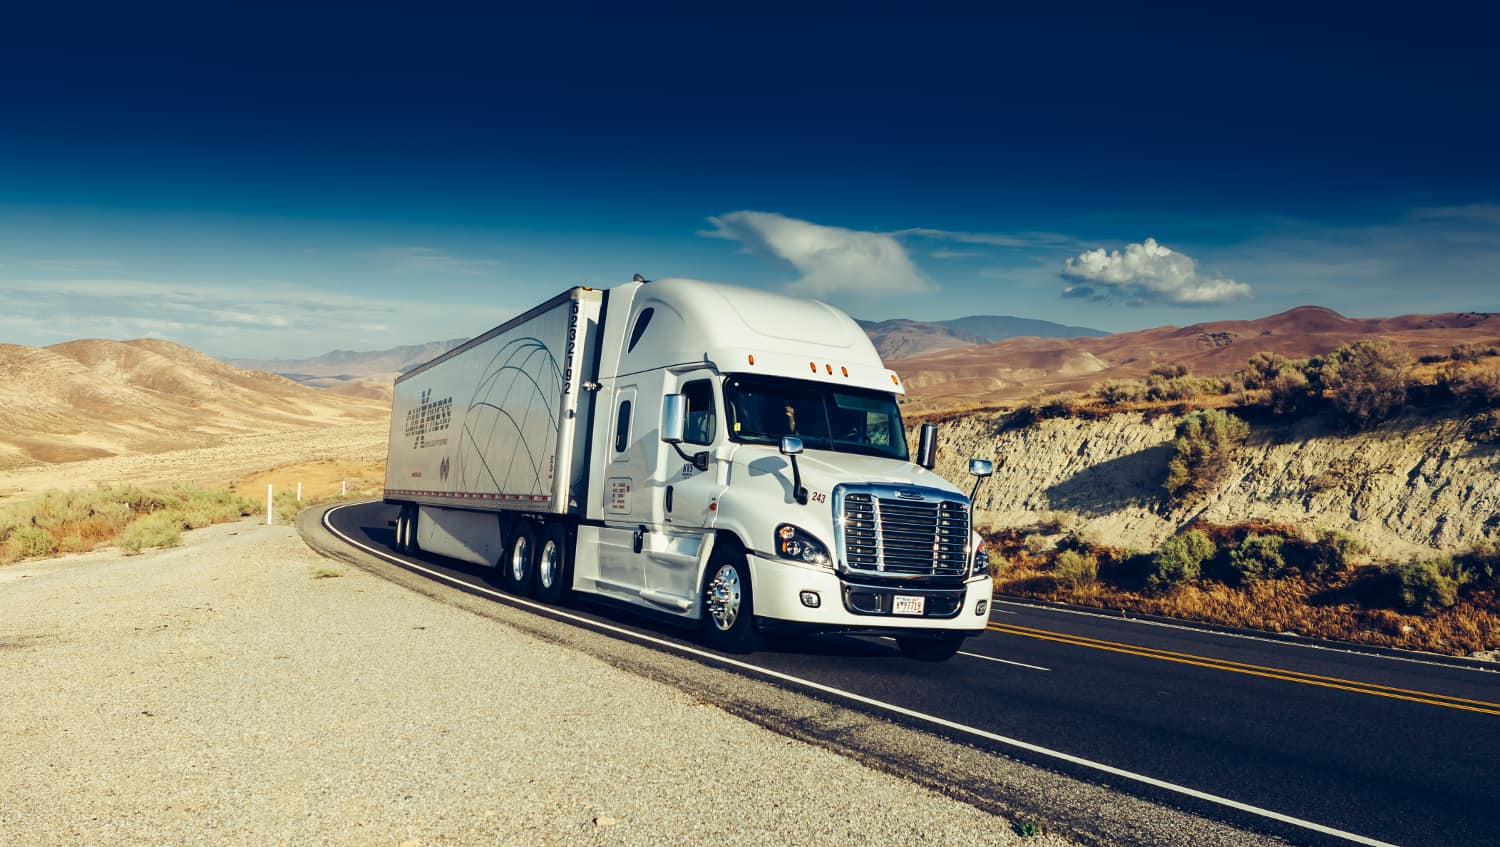 Photo of Today's Pickup: Carriers feeling good, but shippers see some softening